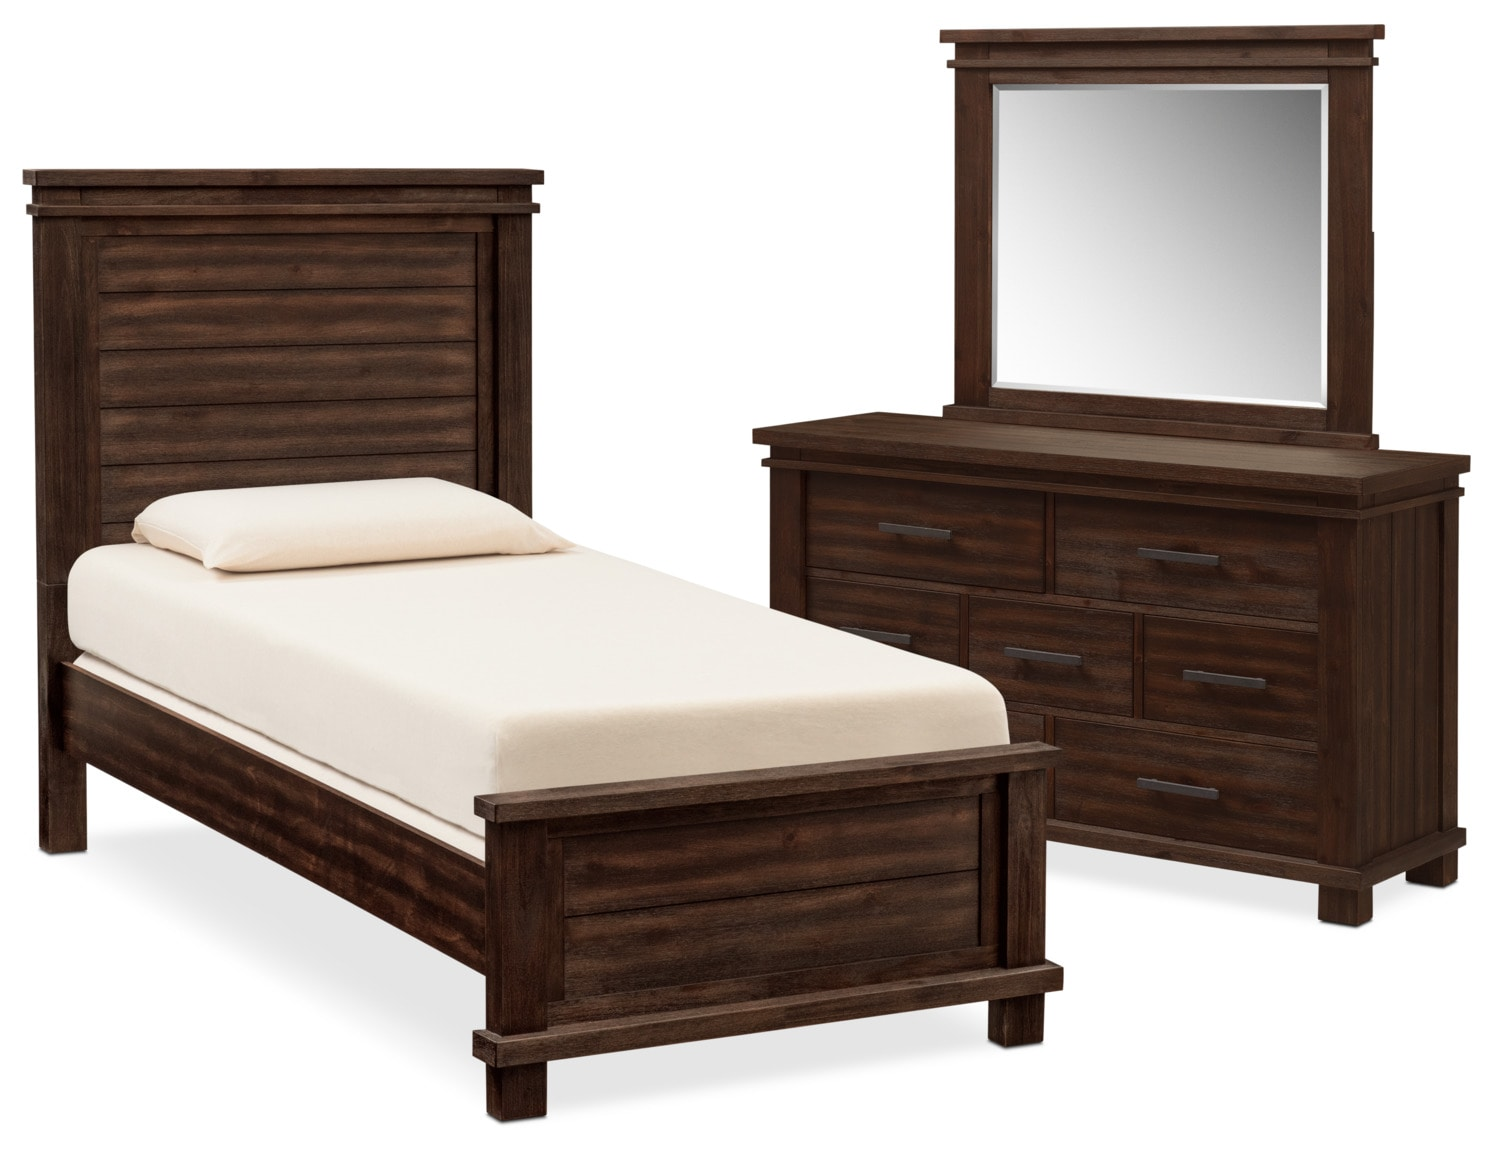 Kids Furniture - Tribeca 5-Piece Bedroom Set with Dresser and Mirror